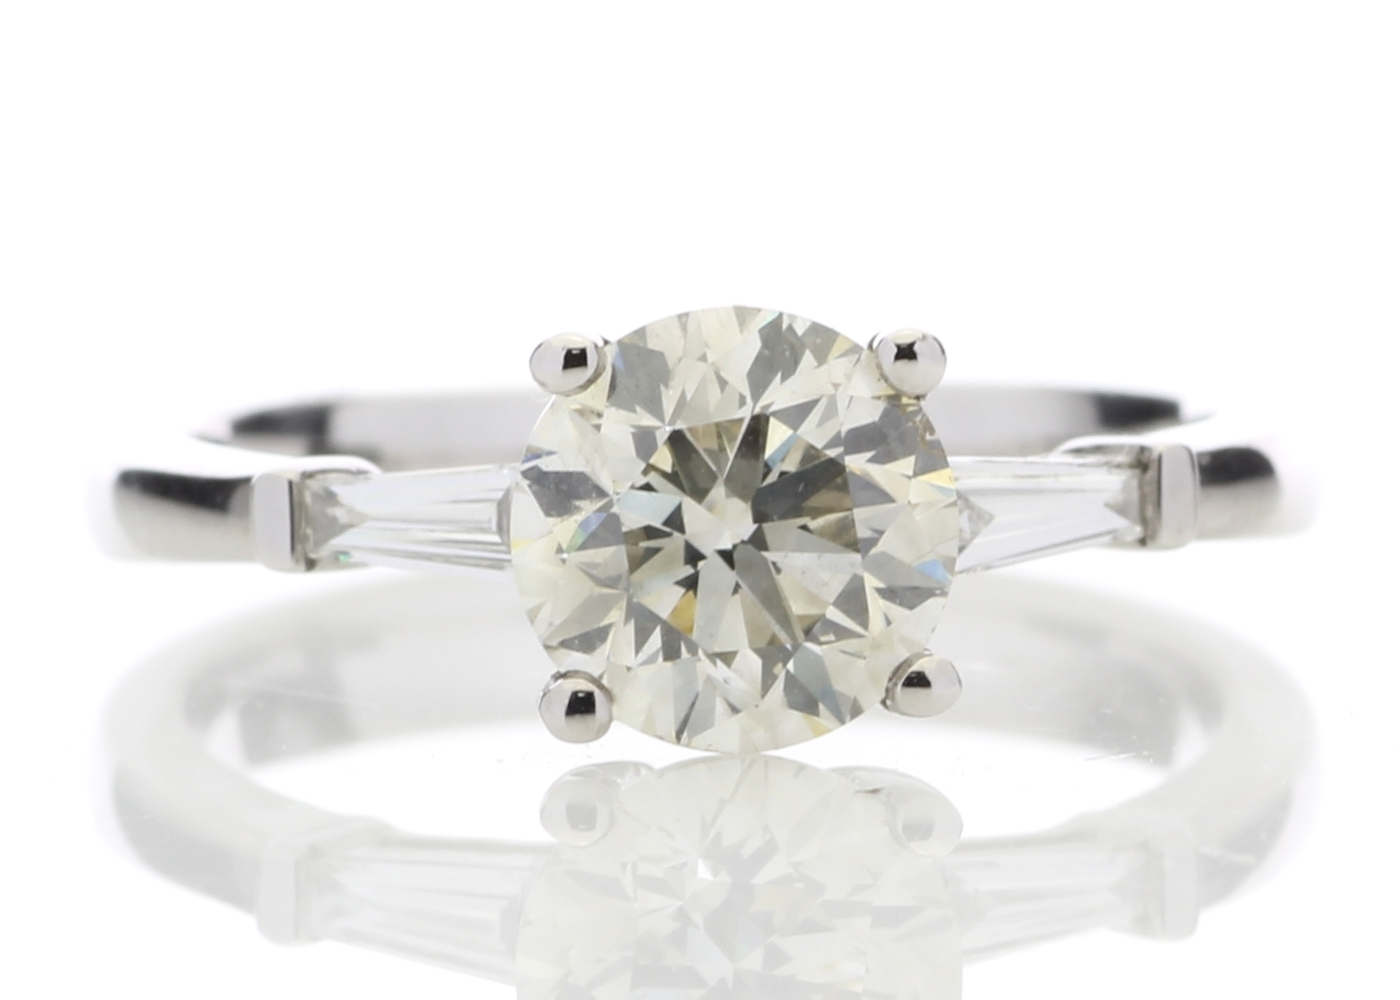 Lot 15 - 18ct White Gold Single Stone Diamond Ring With Stone Set Shoulders (1.50) 1.62 Carats